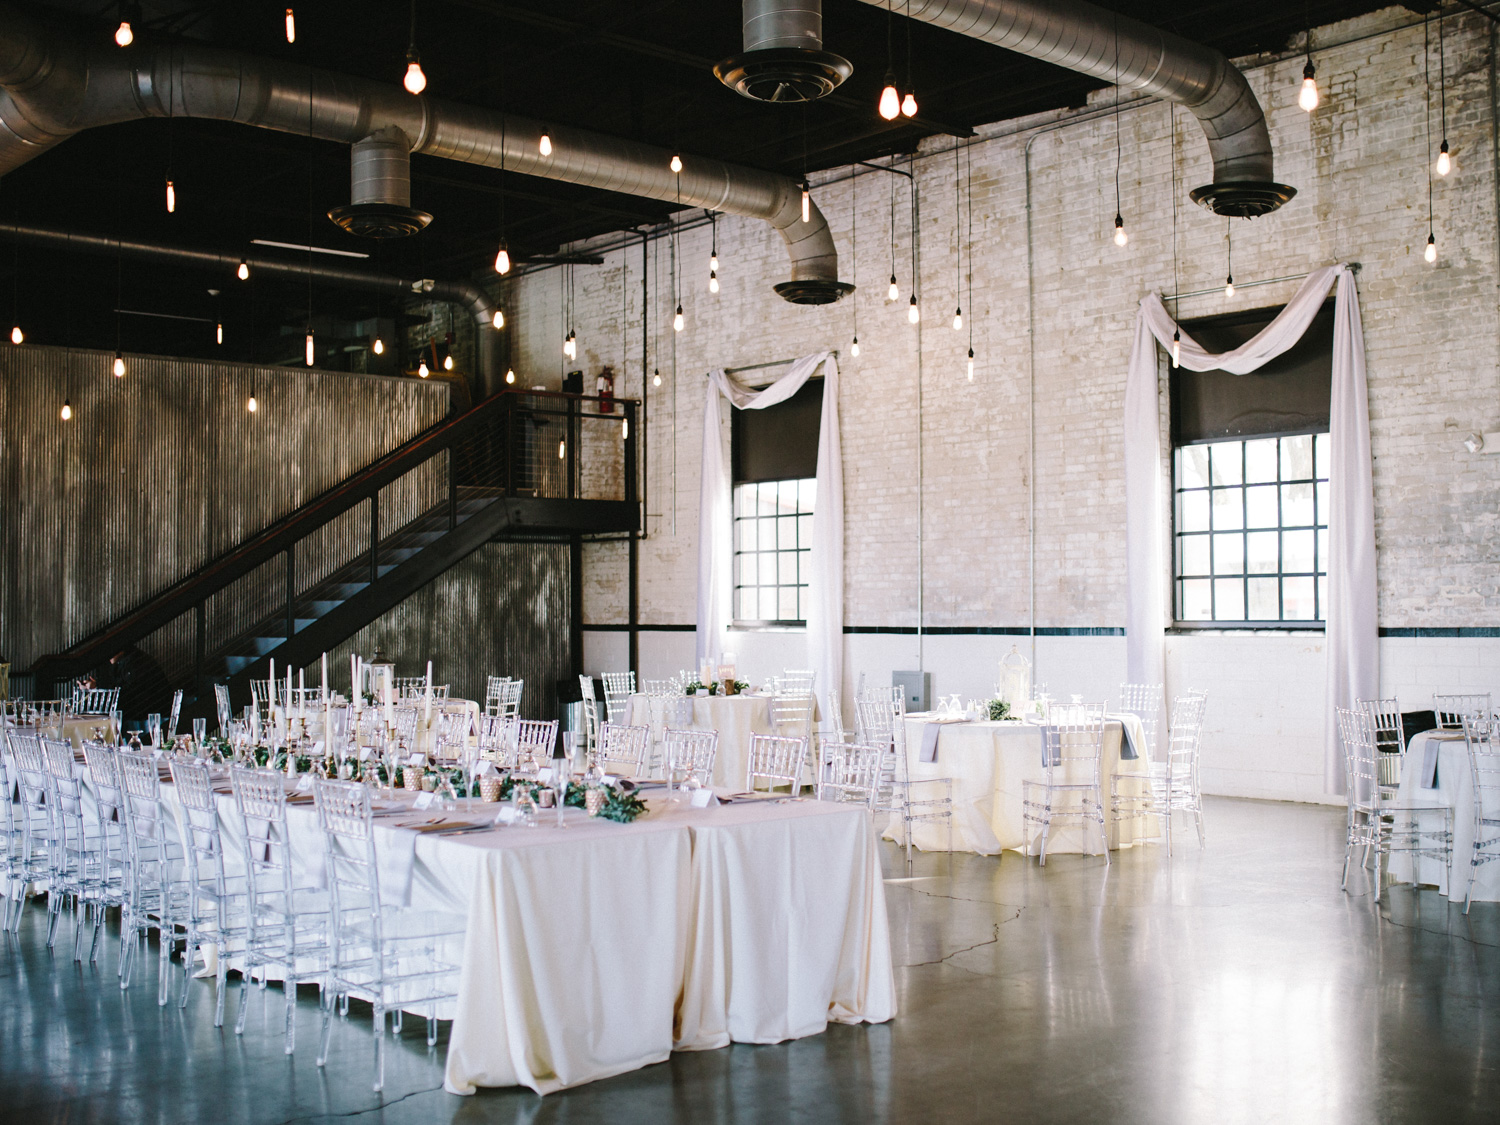 A romantic and ethereal blush and white wedding reception with hanging Edison bulbs at The Brick in Indiana